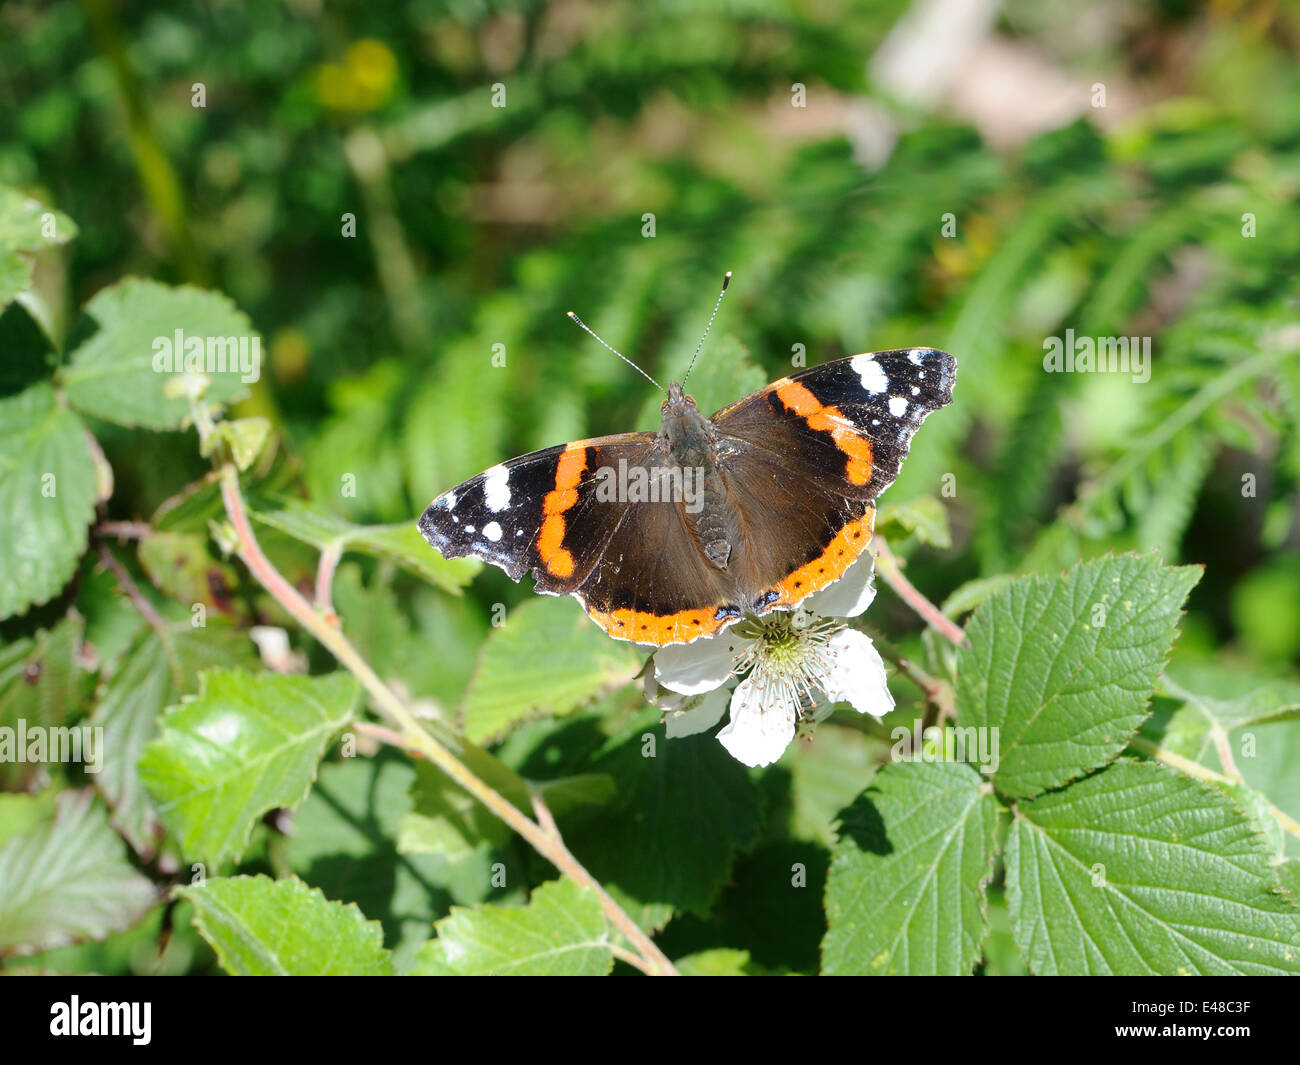 A Red Admiral (Vanessa atalanta) butterfly on a blackberry or bramble (Rubus fructosus).flower. Wings open. - Stock Image